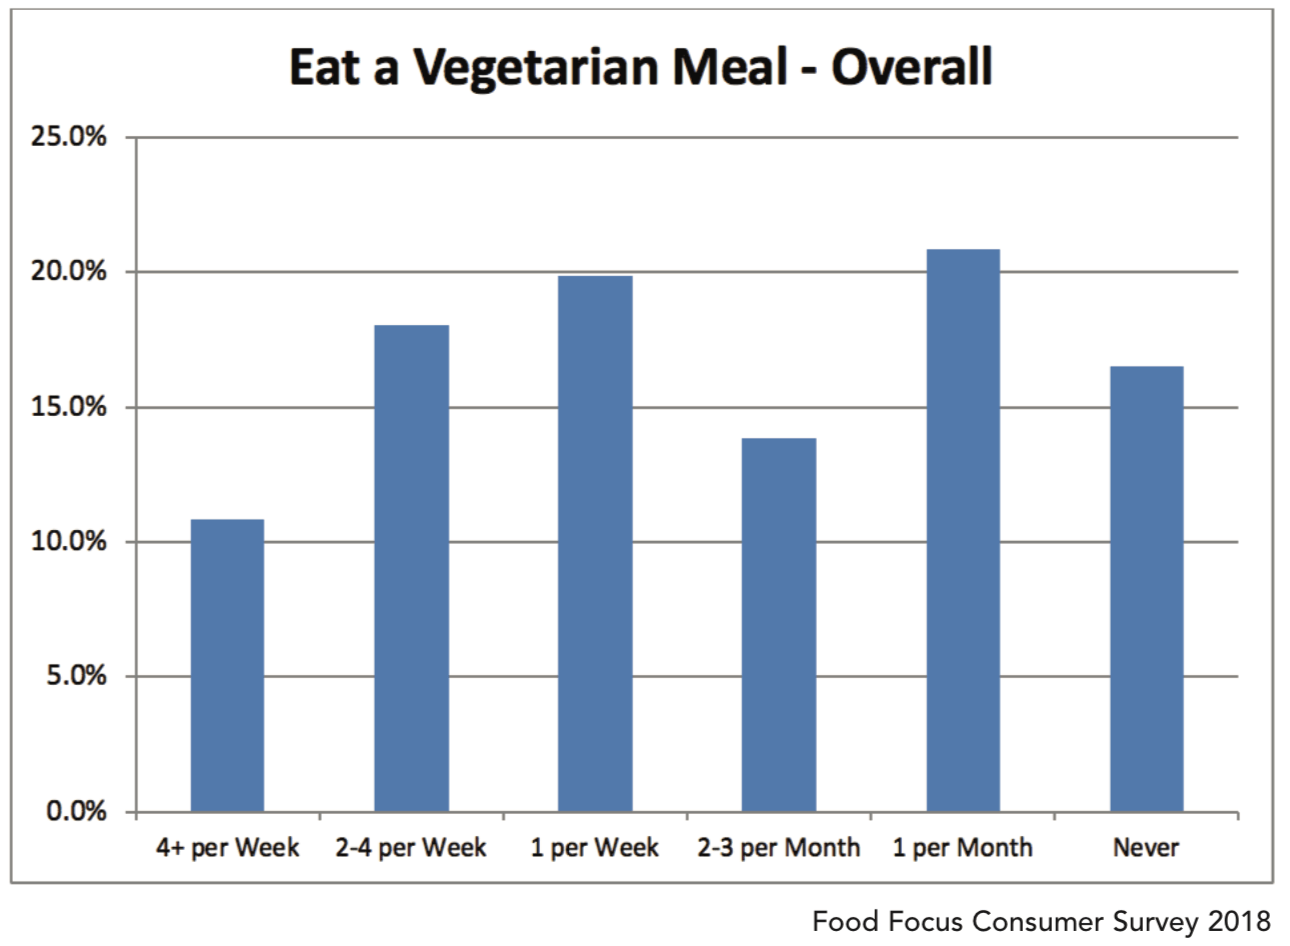 Eat a Vegetarian Meal - Overall